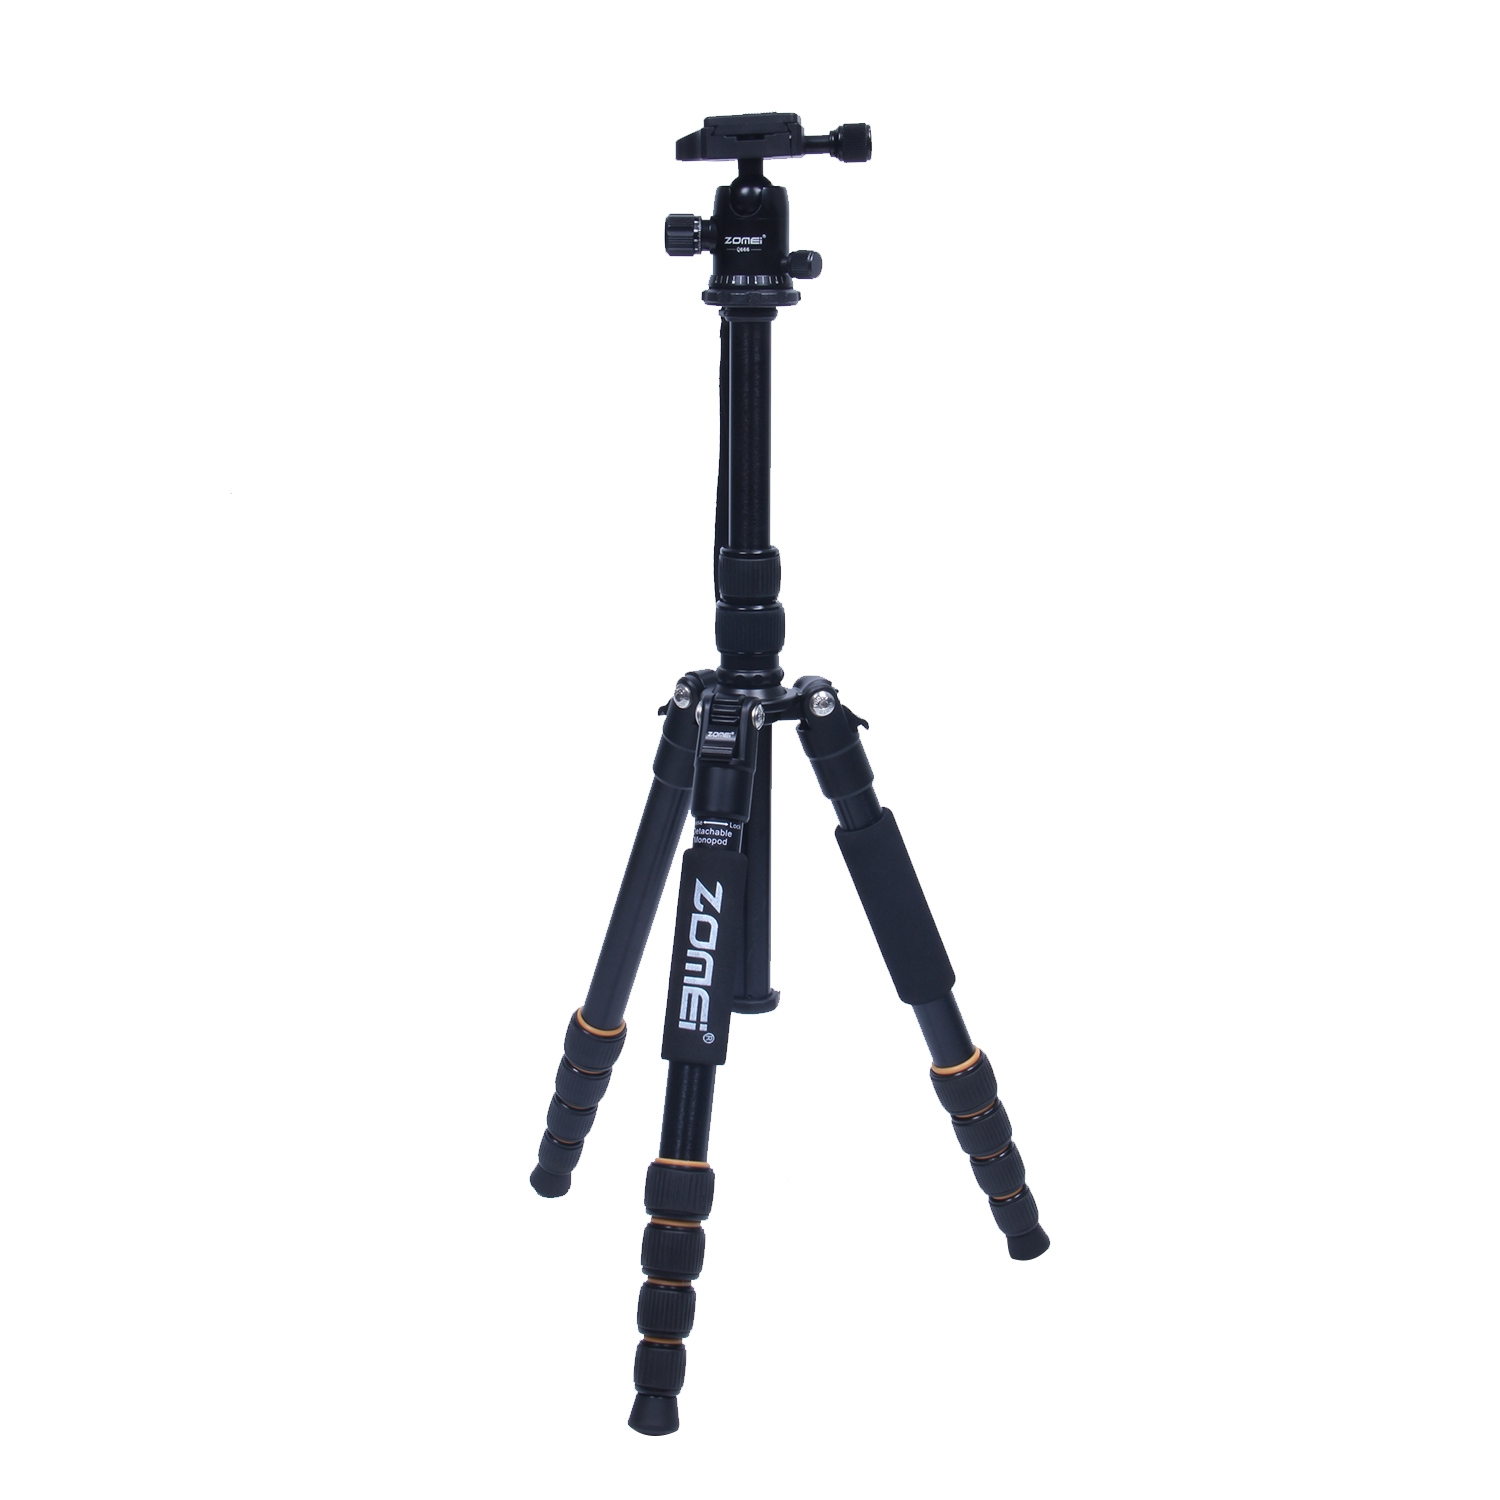 ZOMEi Q66 Aluminum Alloy Camera Tripod Stand with Rocker Arm for Canon Nikon Sony DSLR Cameras Camcorders Lightweight Mini Trip